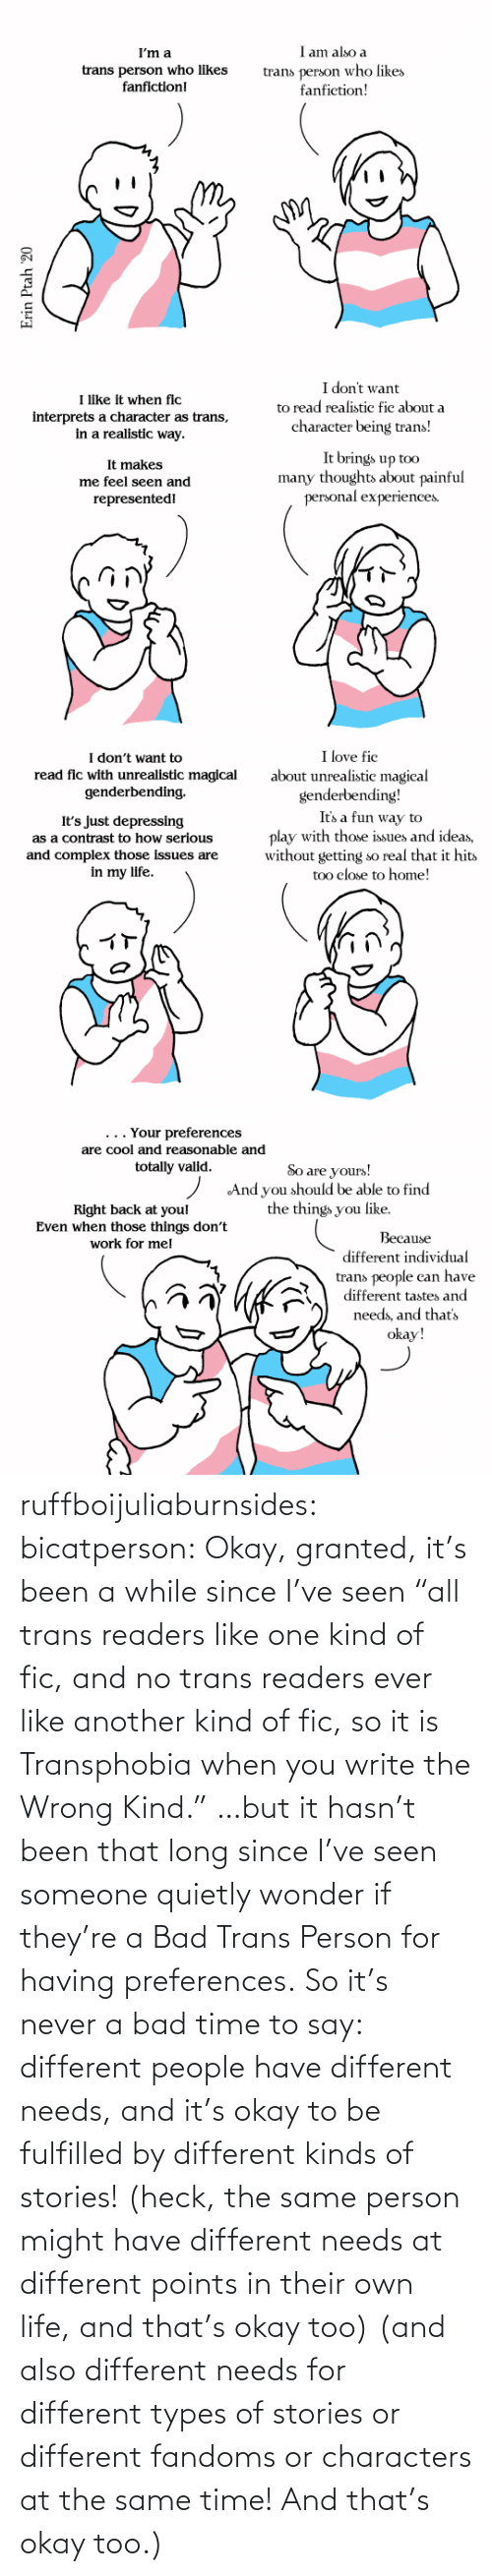 "wrong: ruffboijuliaburnsides: bicatperson:   Okay, granted, it's been a while since I've seen ""all trans readers  like one kind of fic, and no trans readers ever like another kind of  fic, so it is Transphobia when you write the Wrong Kind."" …but it hasn't been that long since I've seen someone quietly wonder if they're a Bad Trans Person for having preferences. So  it's never a bad time to say: different people have different needs,  and it's okay to be fulfilled by different kinds of stories! (heck, the same person might have different needs at different points in their own life, and that's okay too)    (and also different needs for different types of stories or different fandoms or characters at the same time!  And that's okay too.)"